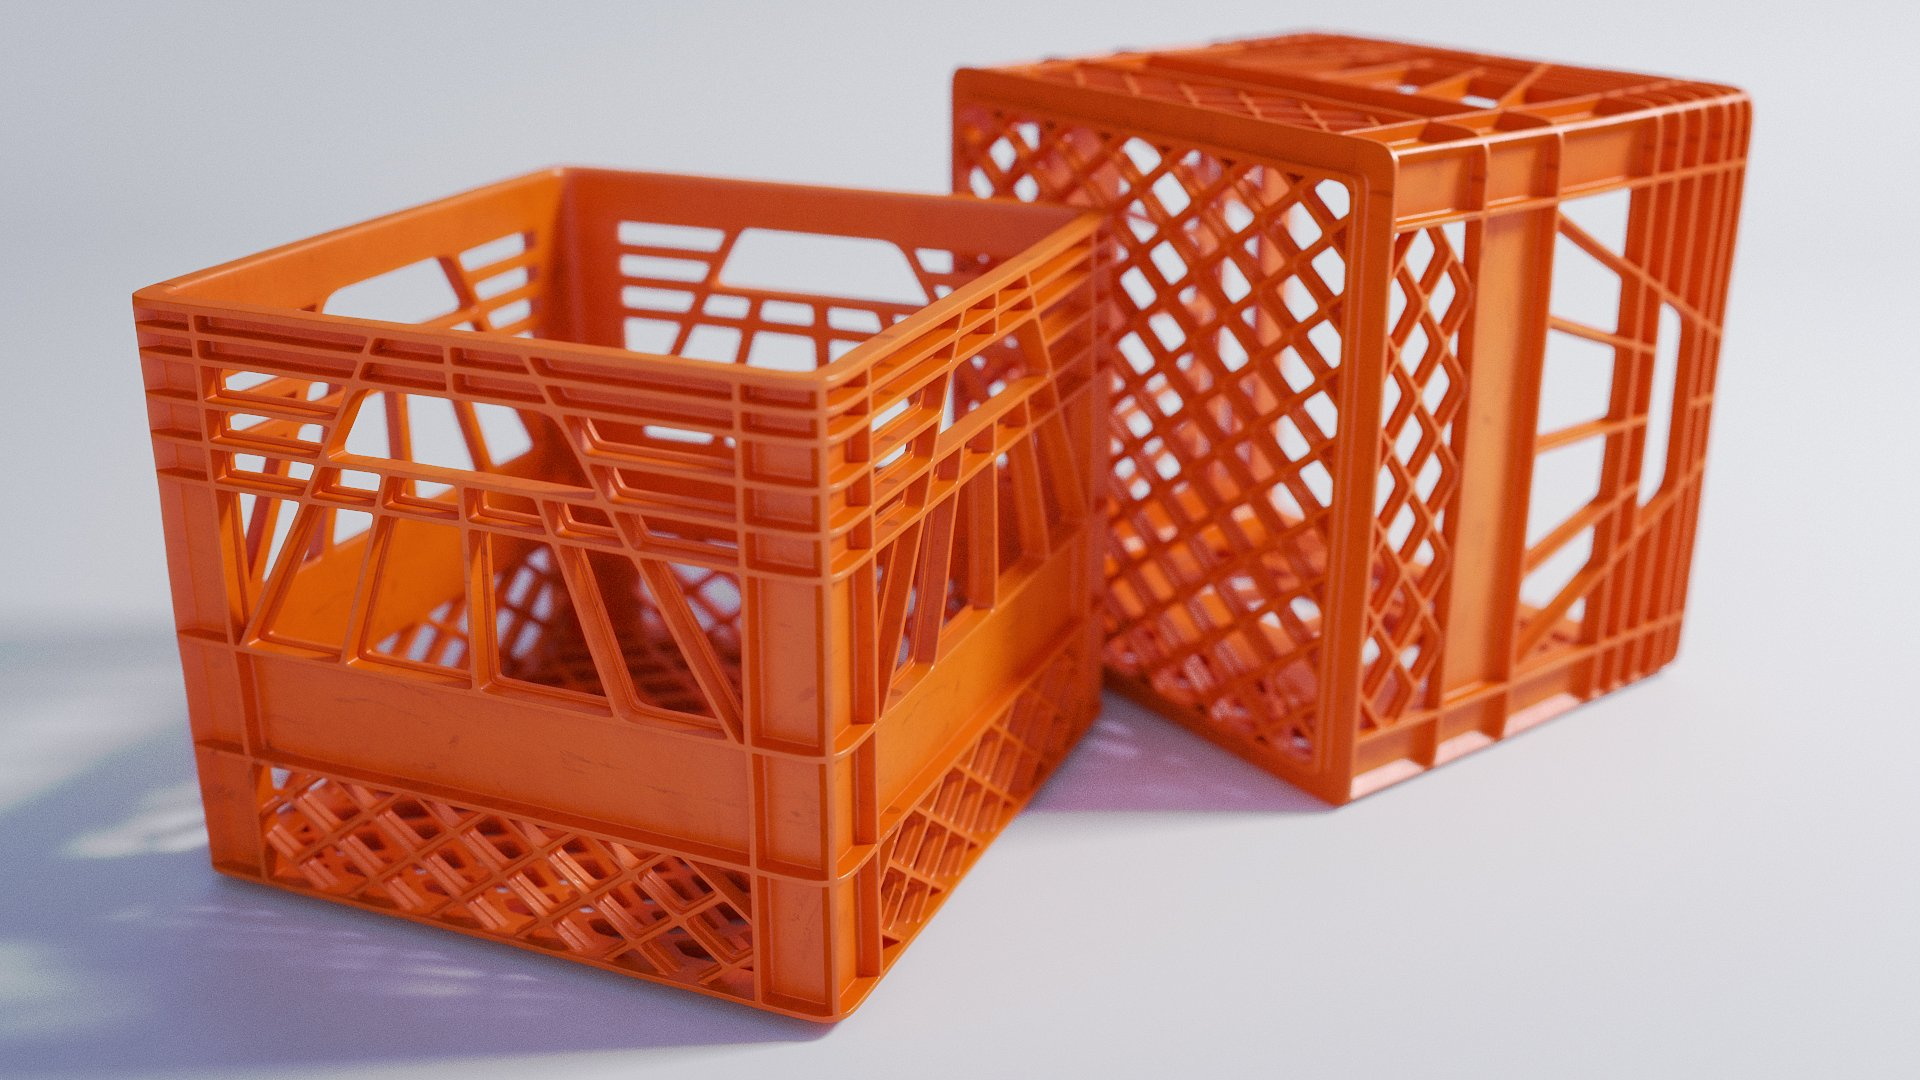 Plastic Crates - Secondary Packaging